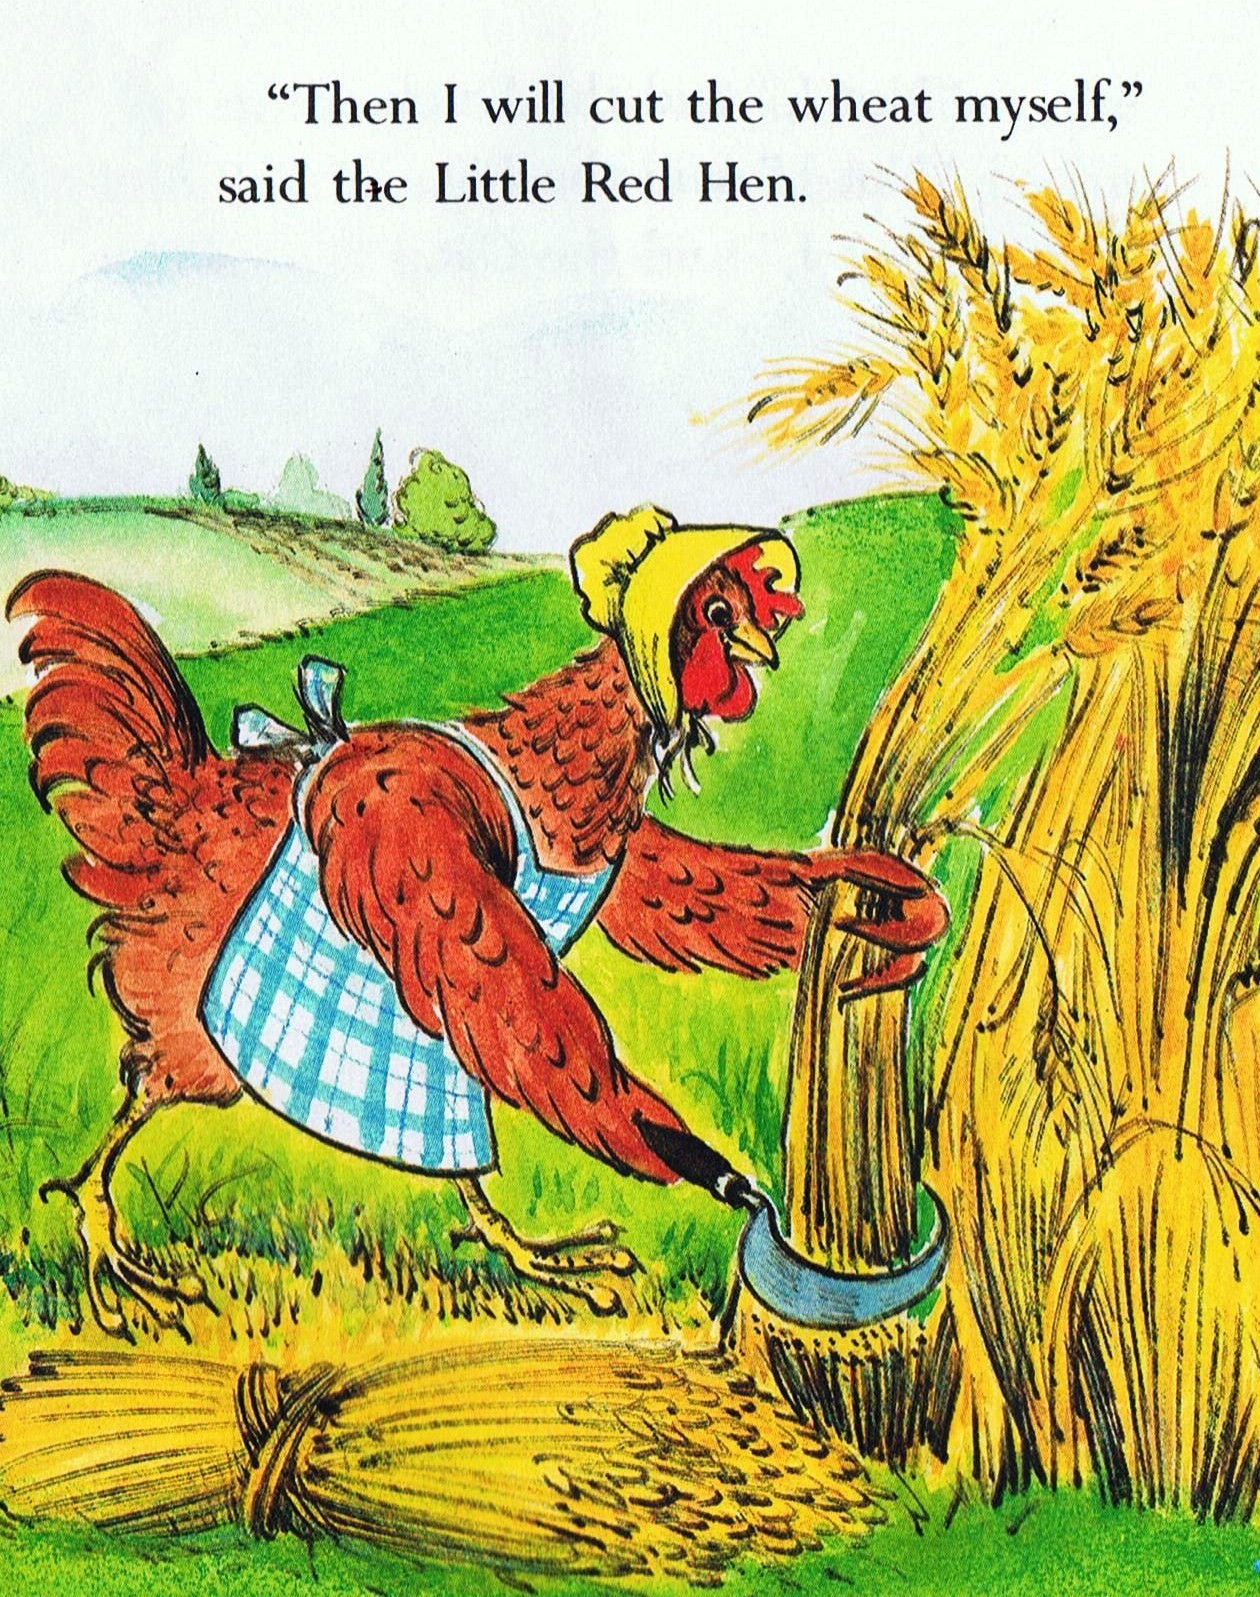 what is the moral lesson of the story of the little red hen